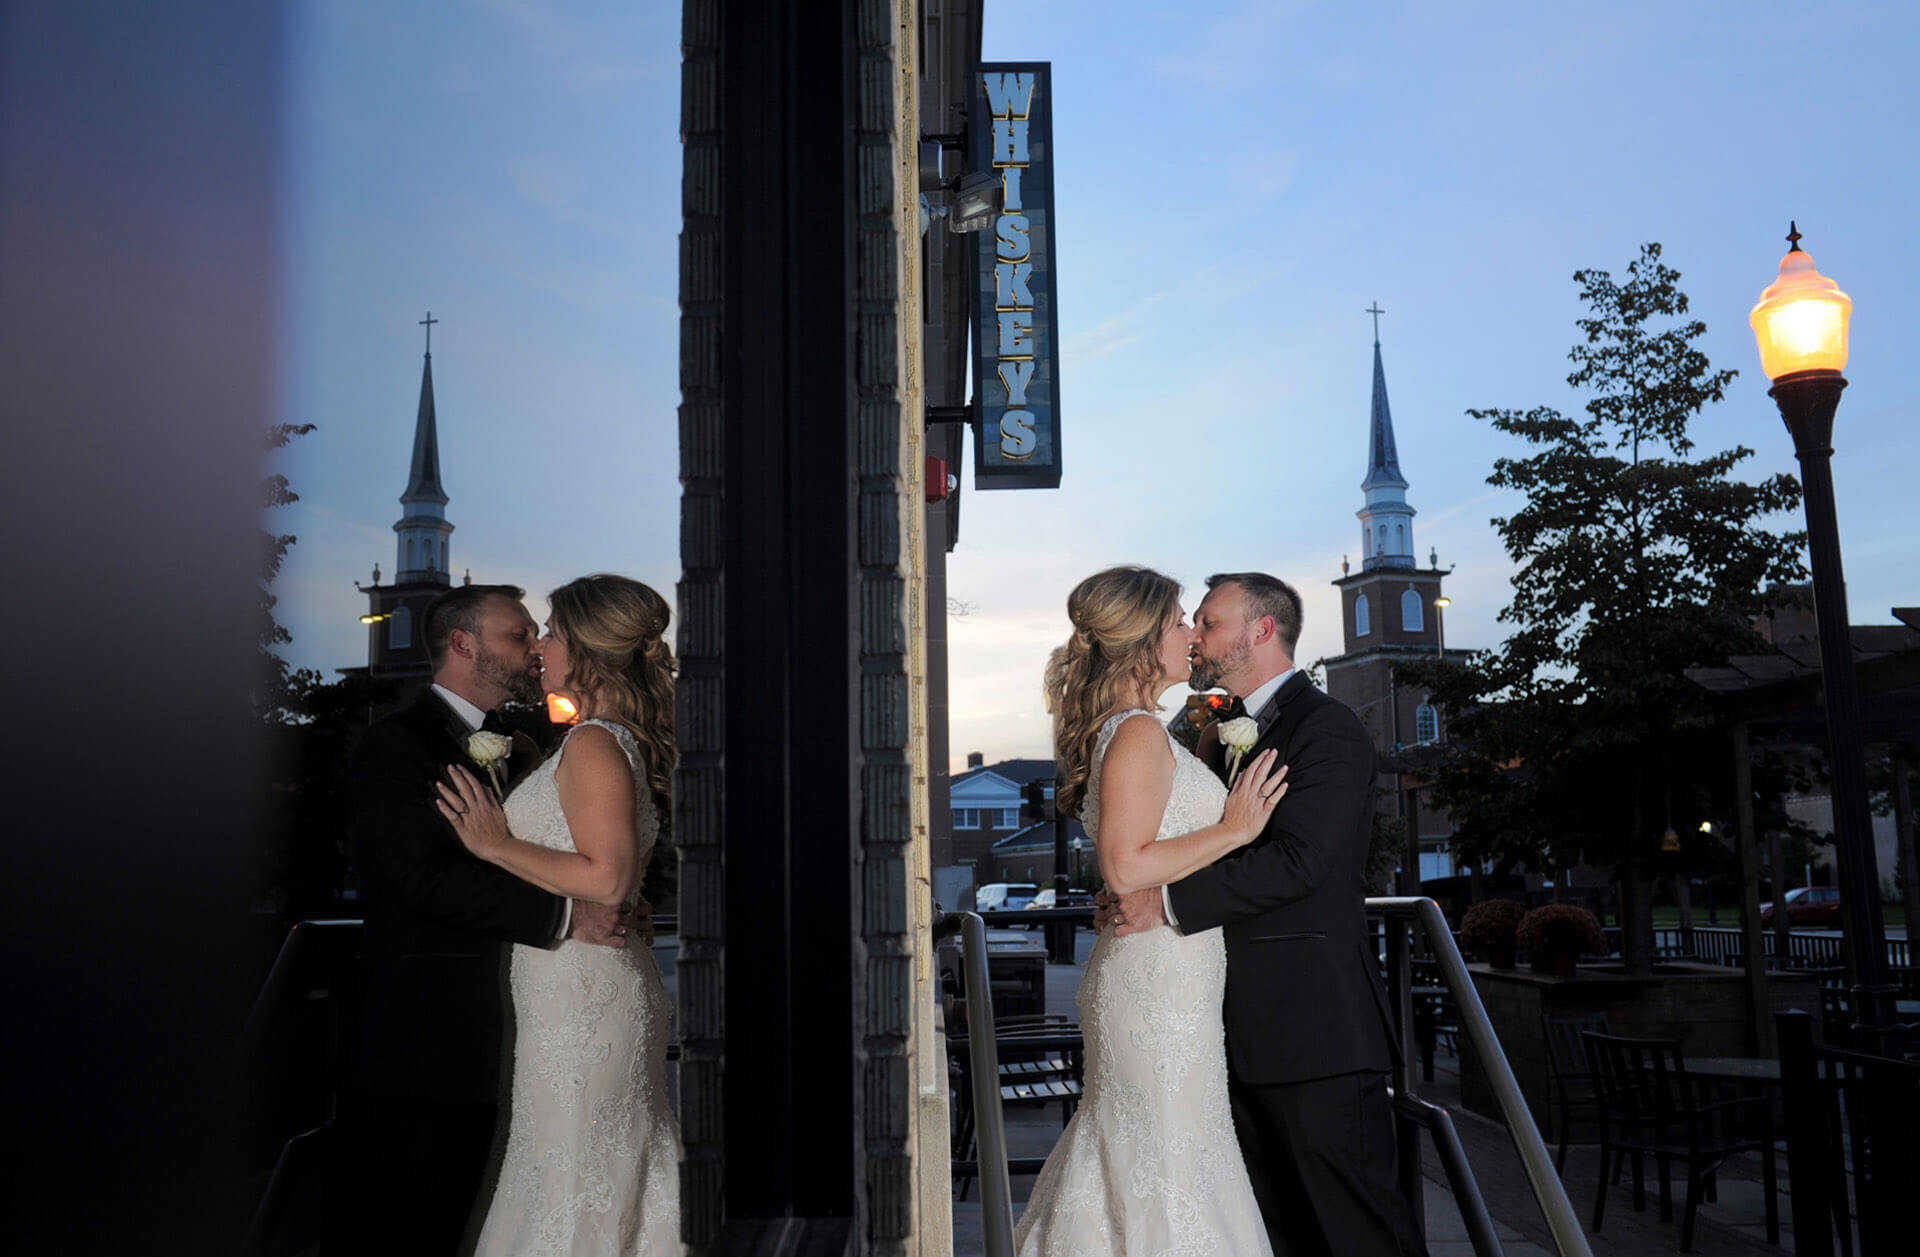 A cool sunset photo of the bride and groom reflected in the window of their reception hall Whiskeys in Wyandotte, Michigan.